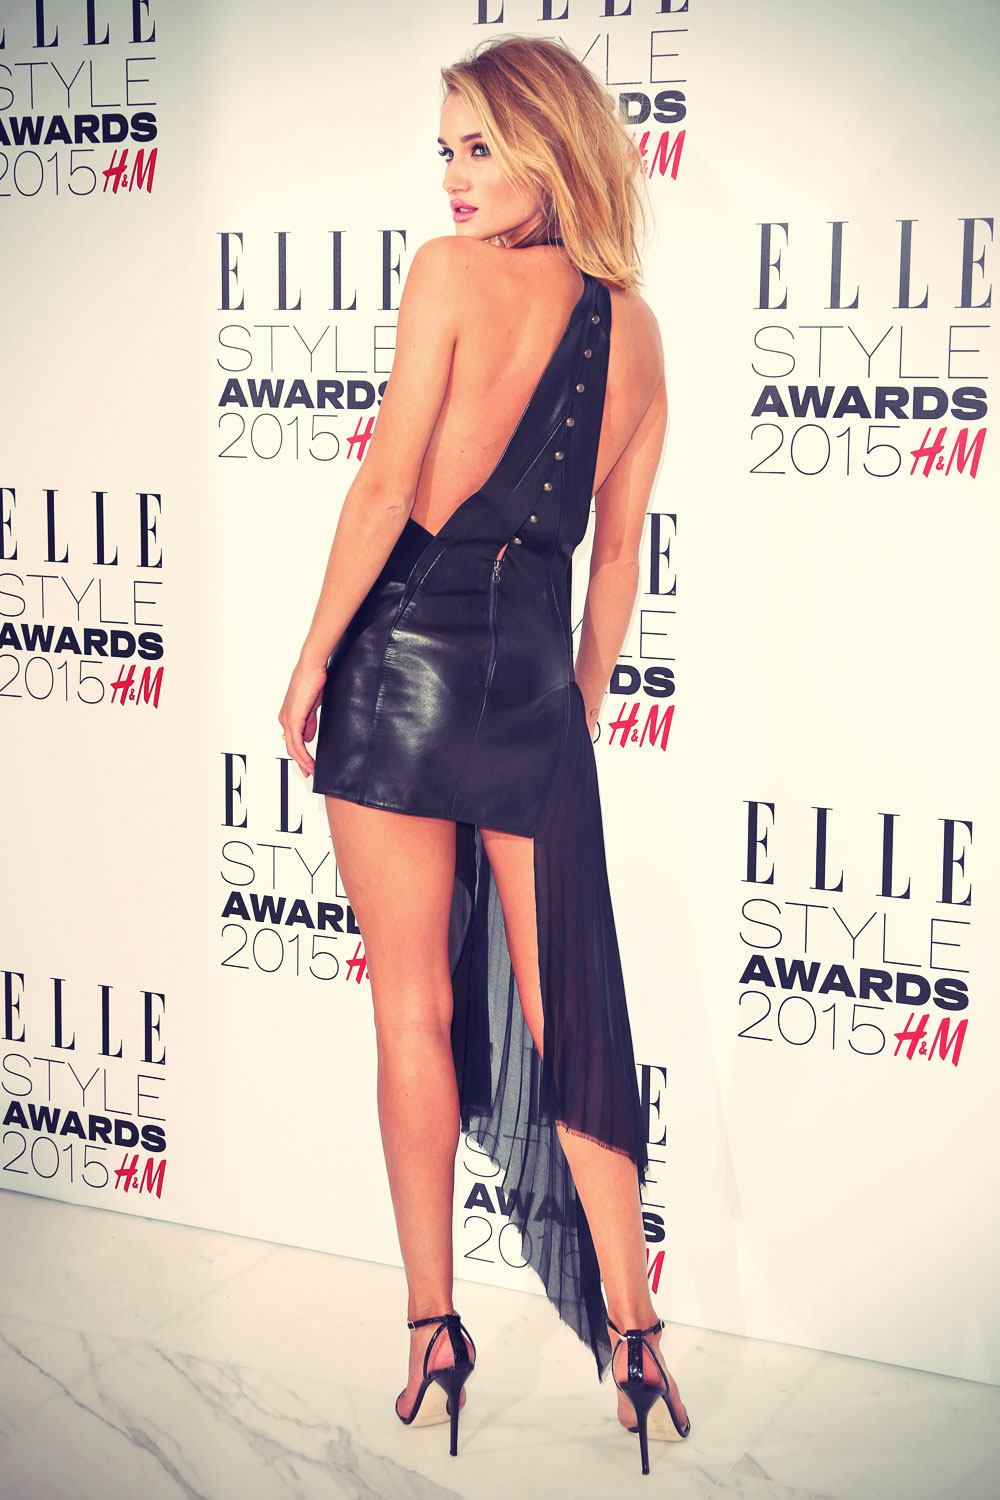 Rosie Huntington Whiteley attends Elle Style Awards 2015